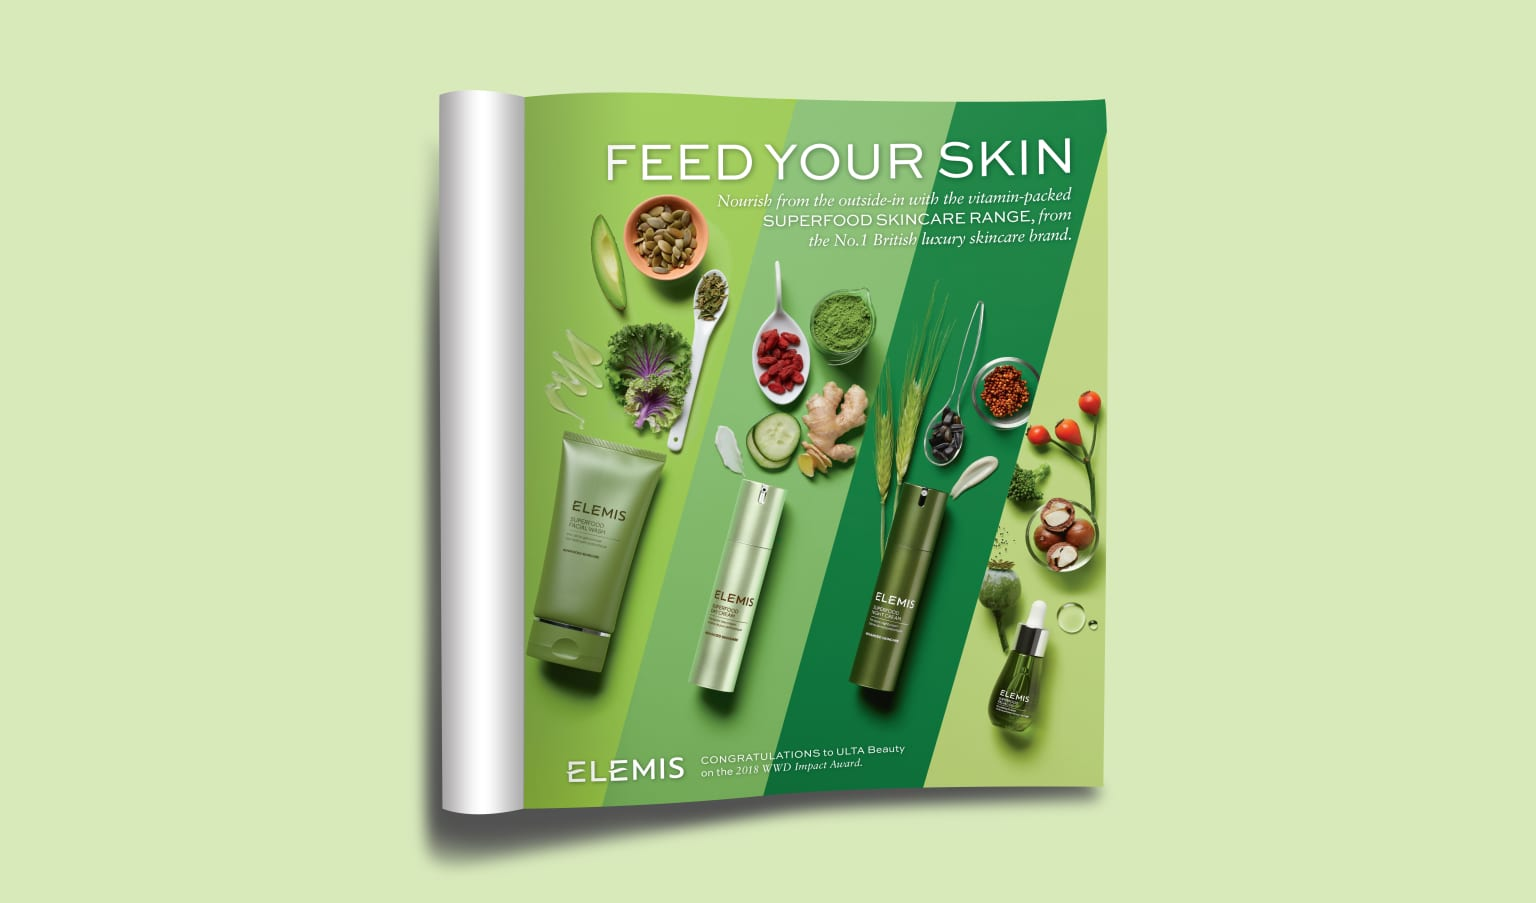 ELEMIS Superfood Campaign